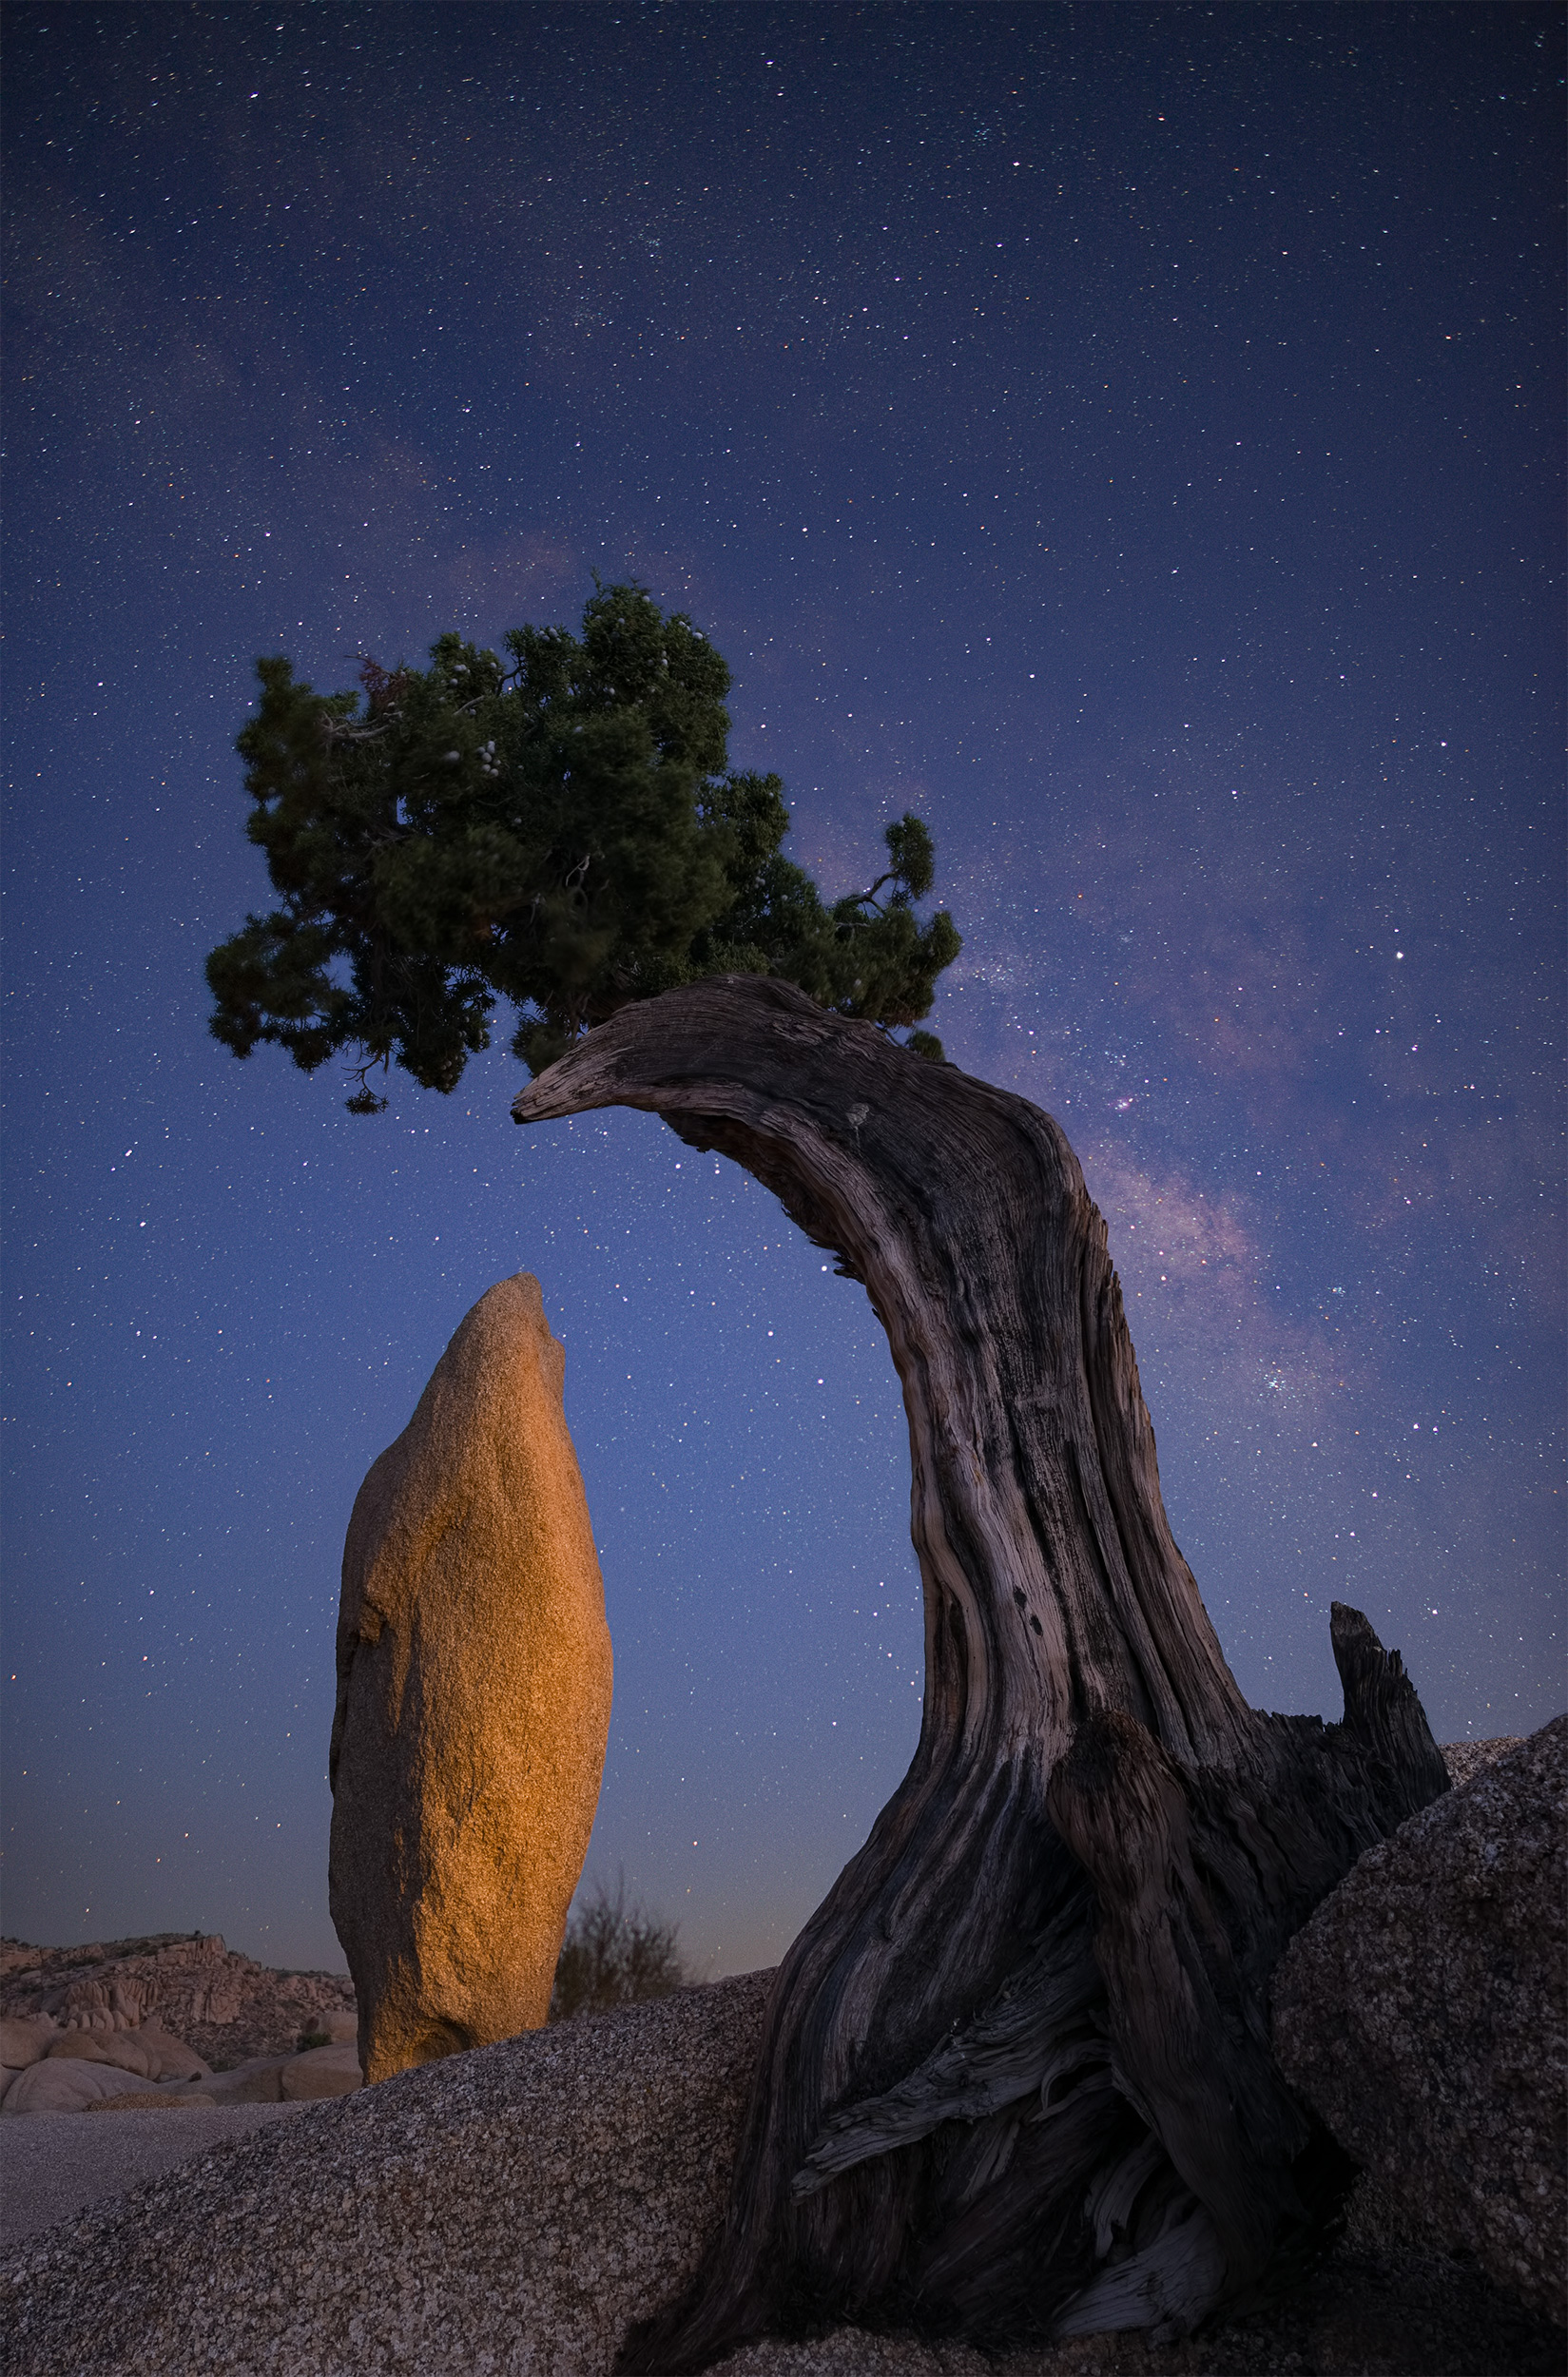 Juniper & Monolith, with the Milky Way in the background.